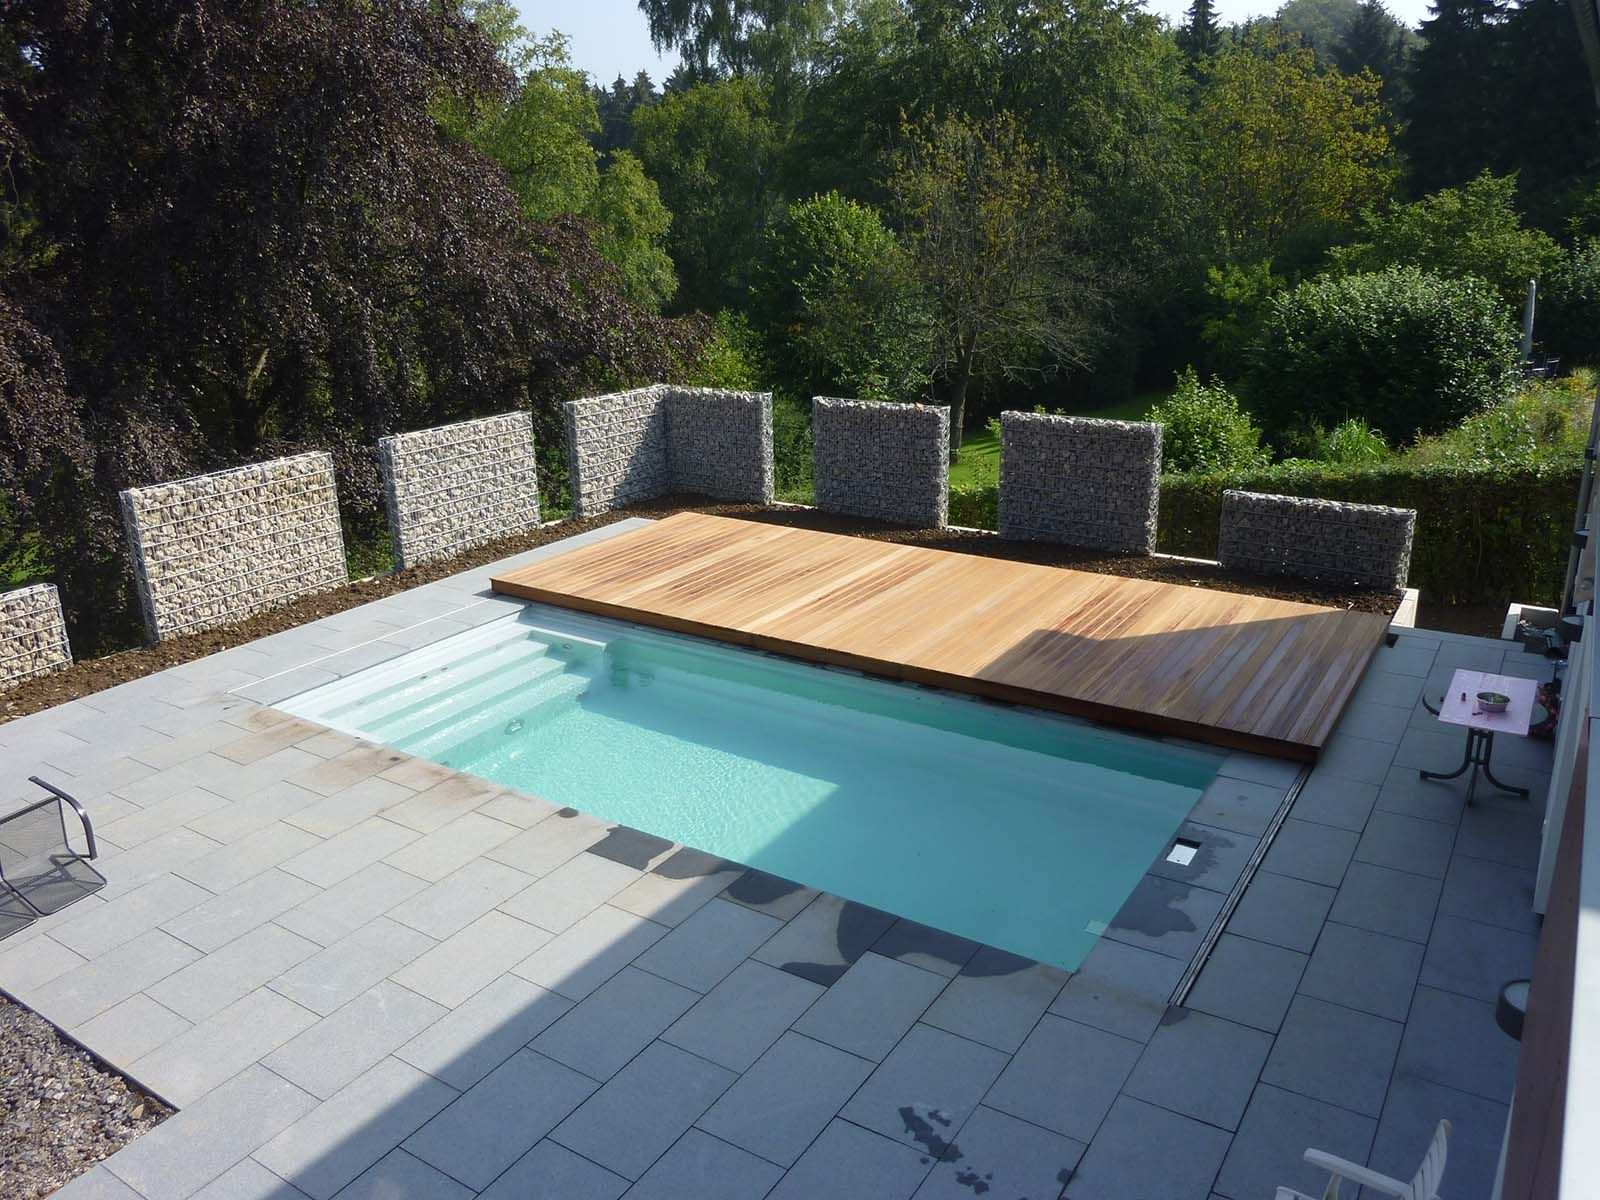 Begehbare terrassen schwimmbadabdeckung architektur - Covering a swimming pool with decking ...